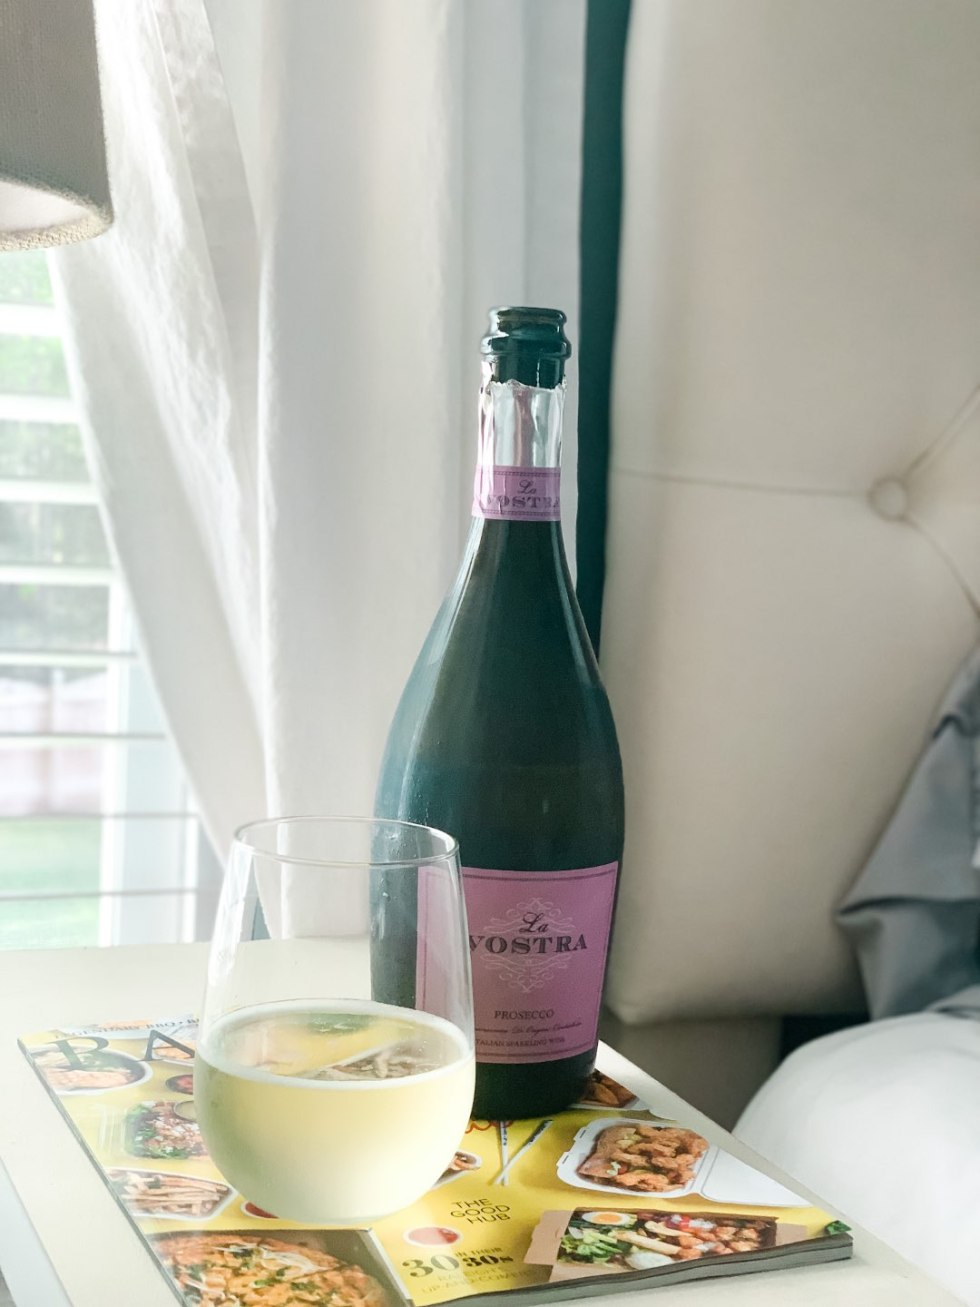 6 Wines to Try While Social Distancing - I'm Fixin' To - @mbg0112 | Top 10 Best Wines by popular N.C. lifestyle blog, I'm Fixin' To: image of a bottle of La Vostra Prosecco on a night stand next to a lamp.